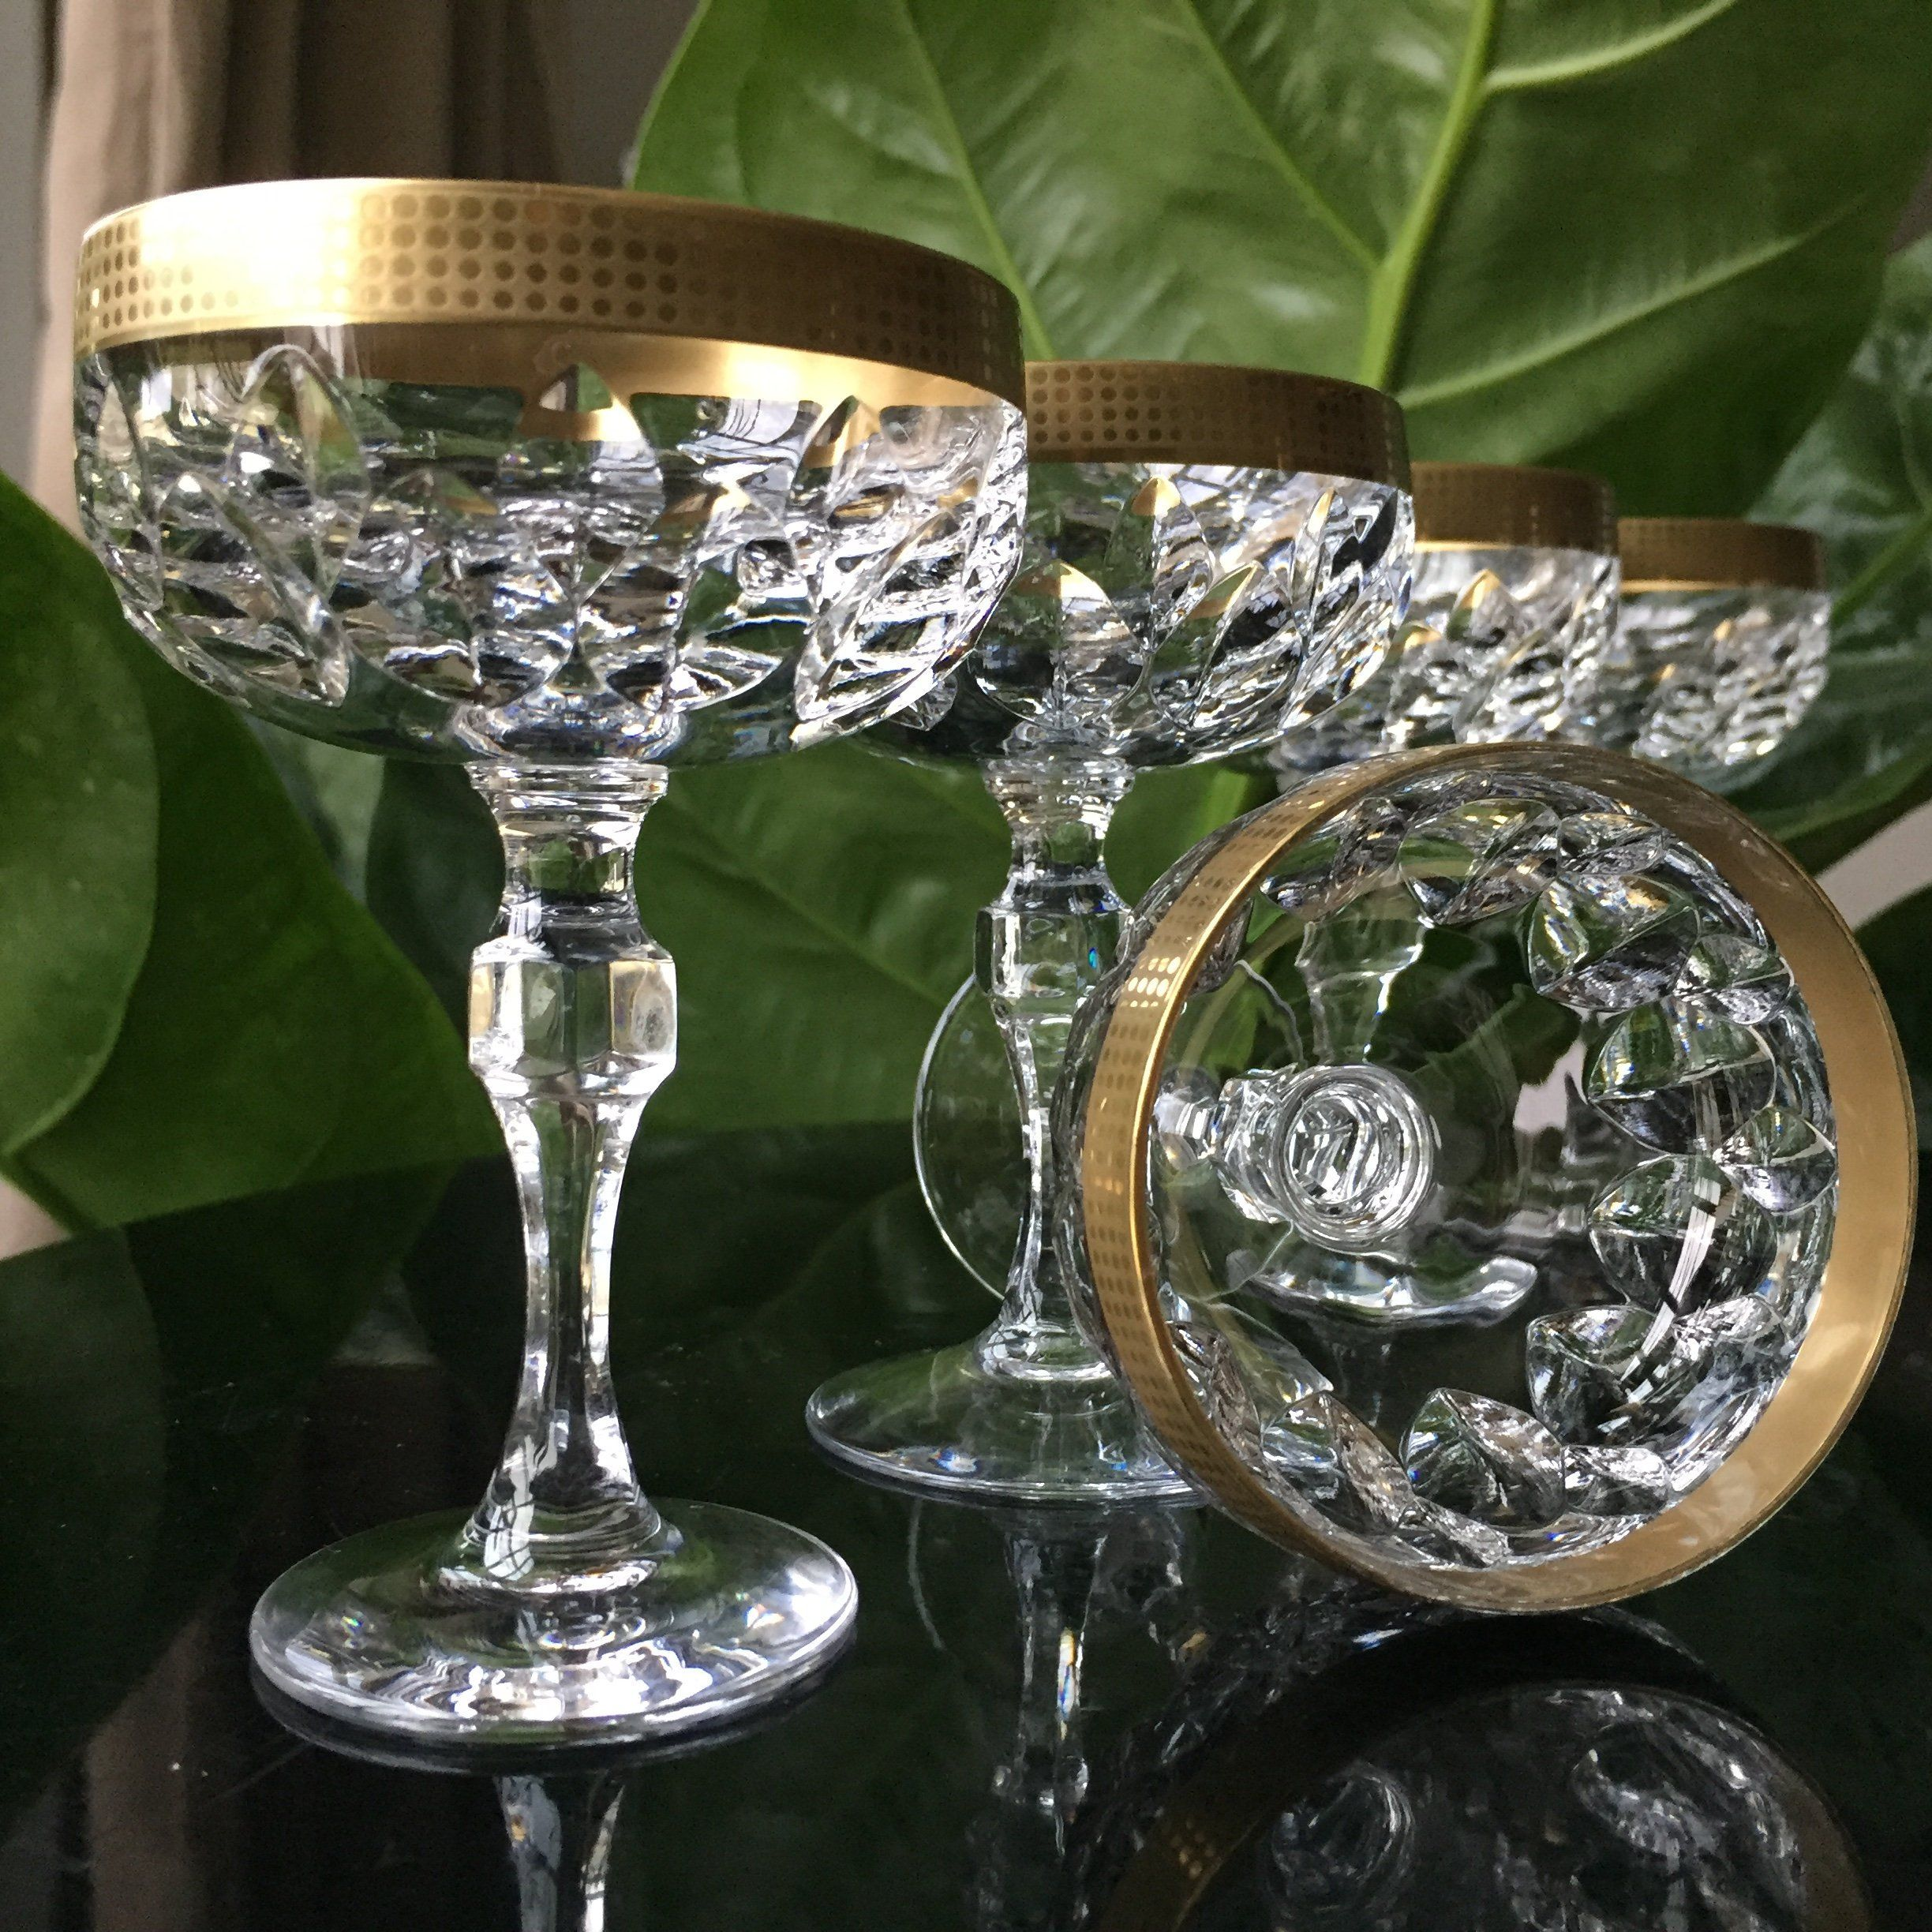 6x Crystal Aperitif Glasses Cordial Coupes 24k Gold Trim Etsy Aperitif Glasses Crystals Crystal Glassware